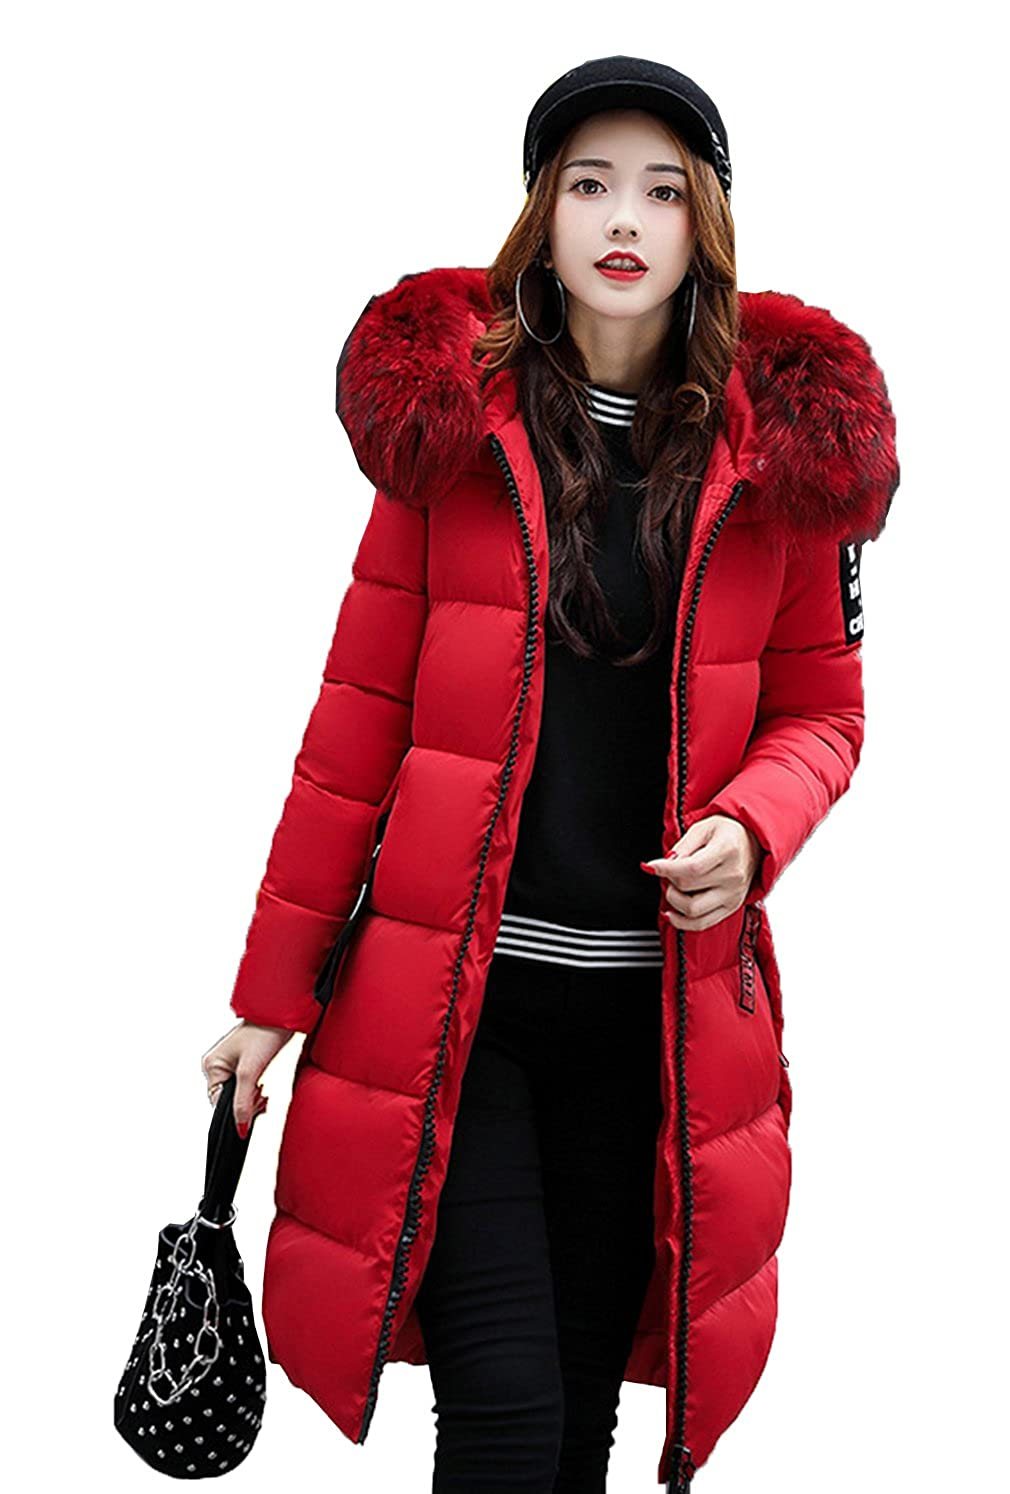 COMVIP Women Long Quilted Jacket Puffer Coat With Faux Fur Hood 6FDZ190